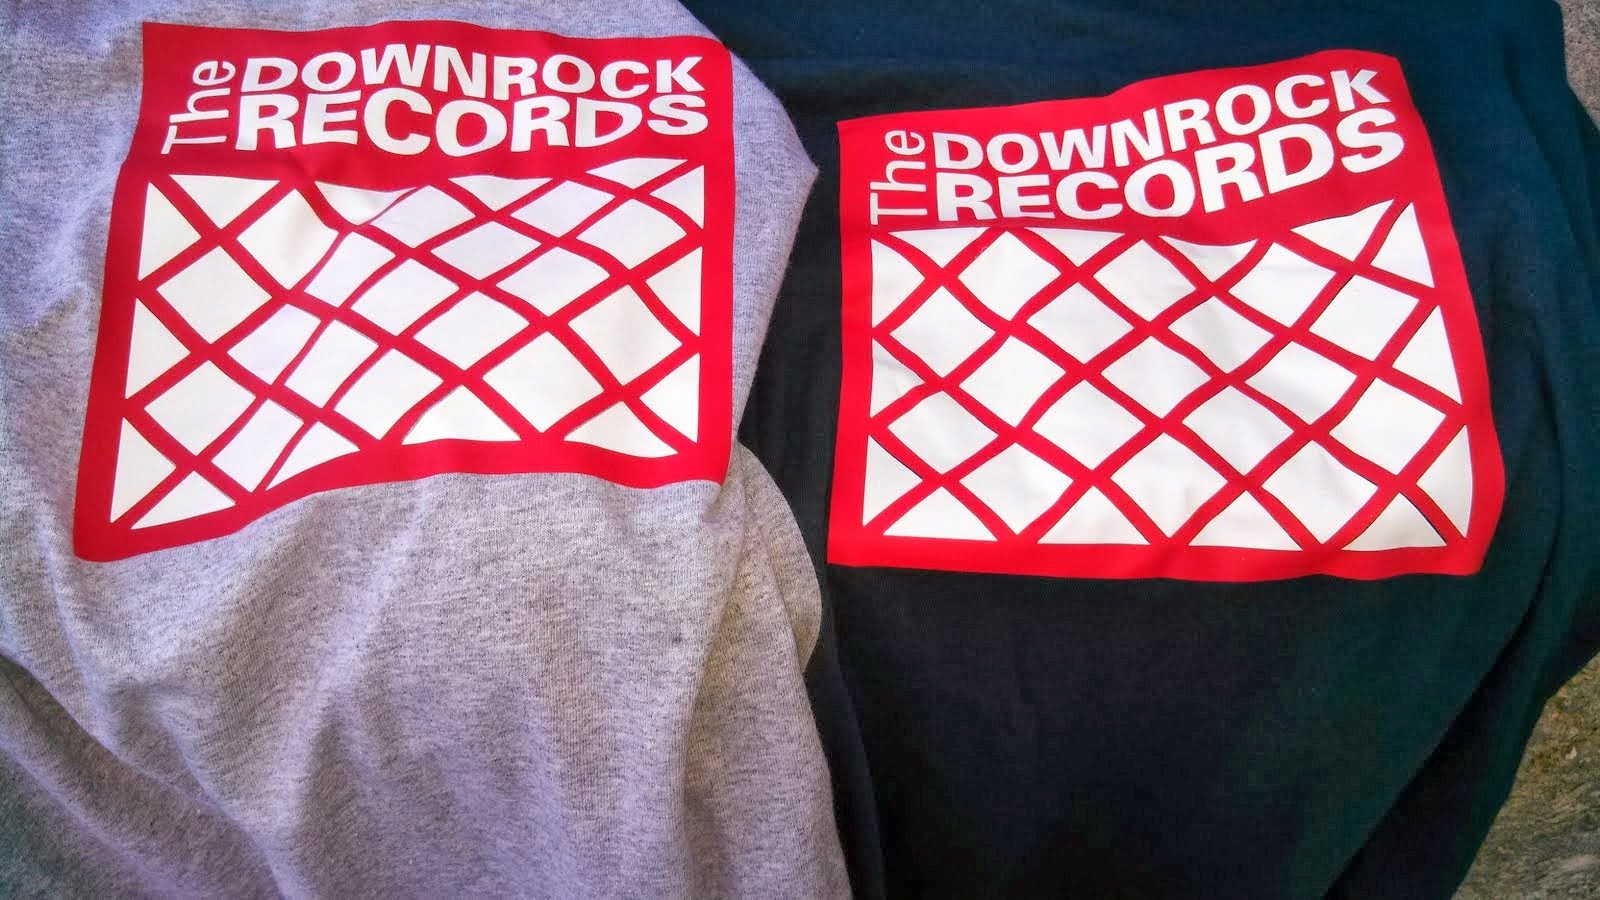 The Downrock Records.